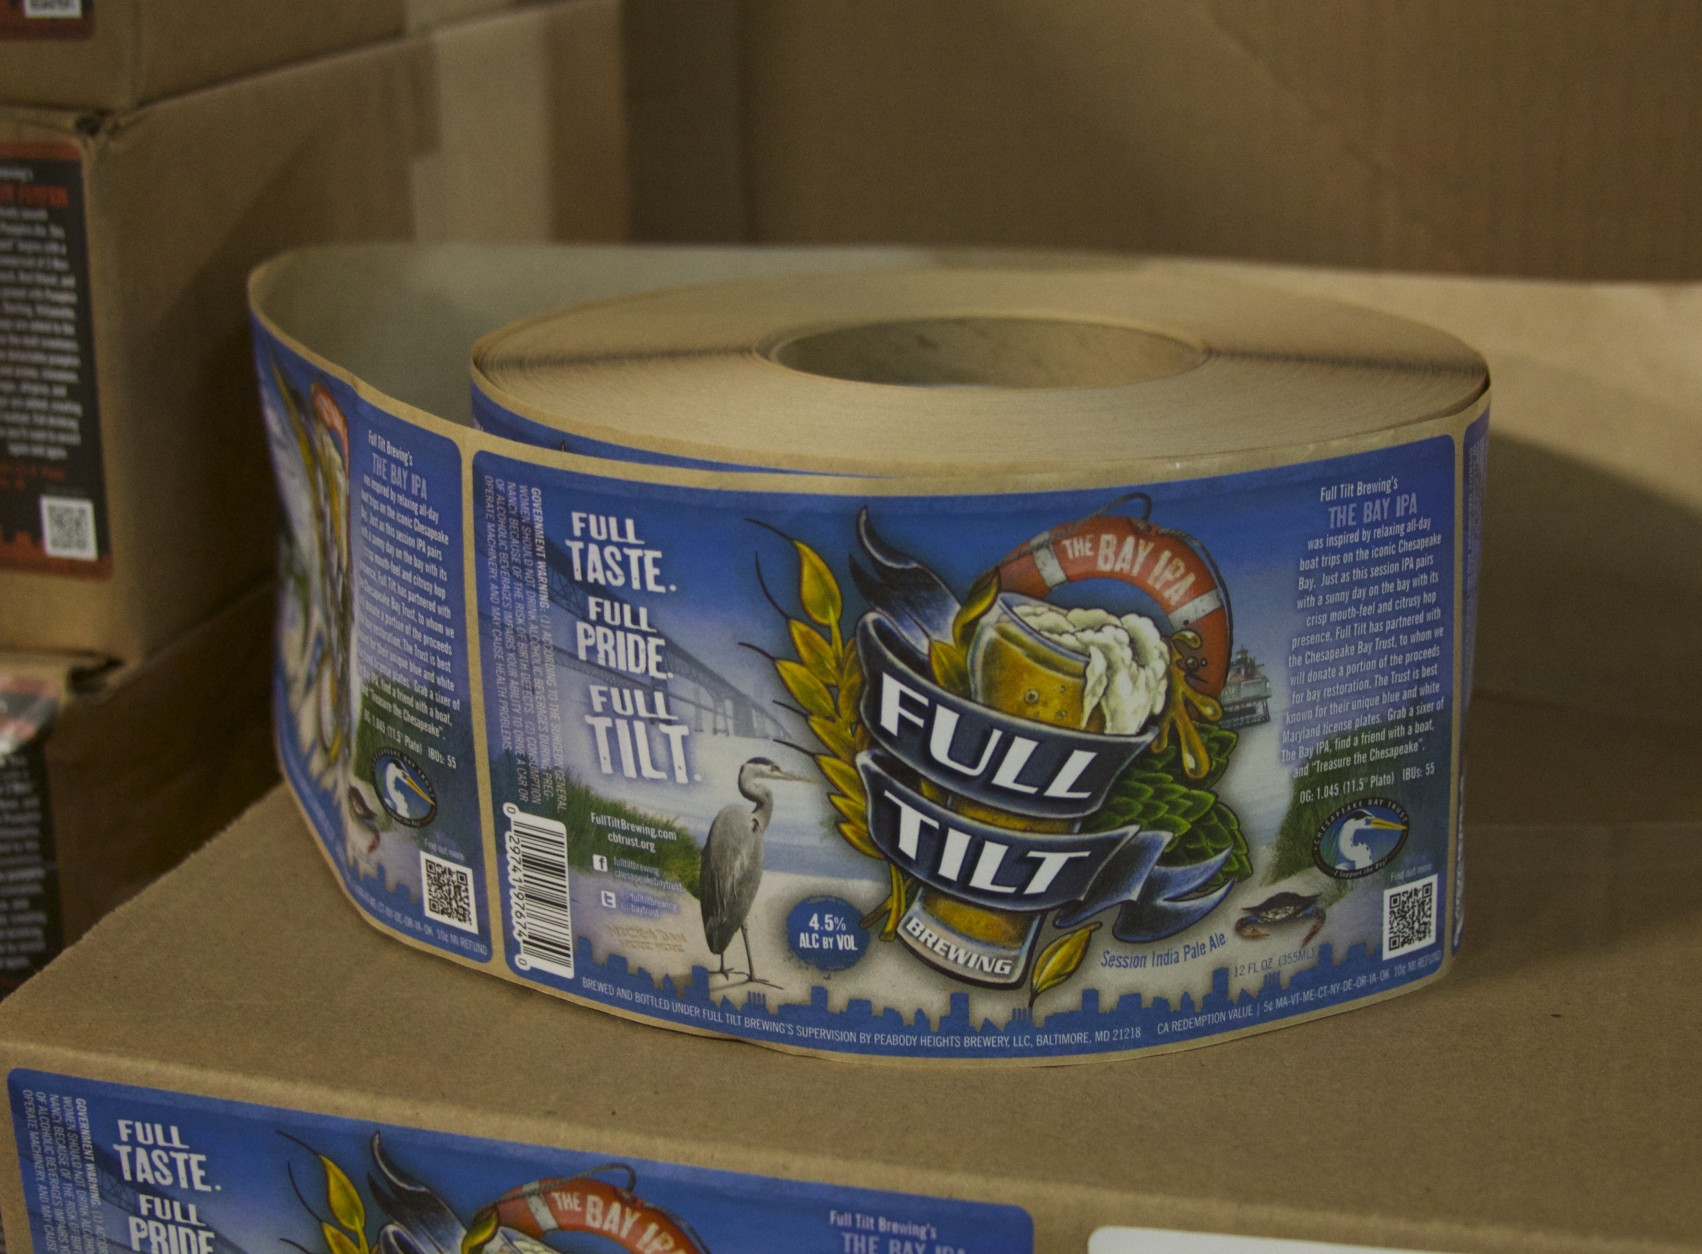 Drinking new beer will help improve the Bay | WTOP